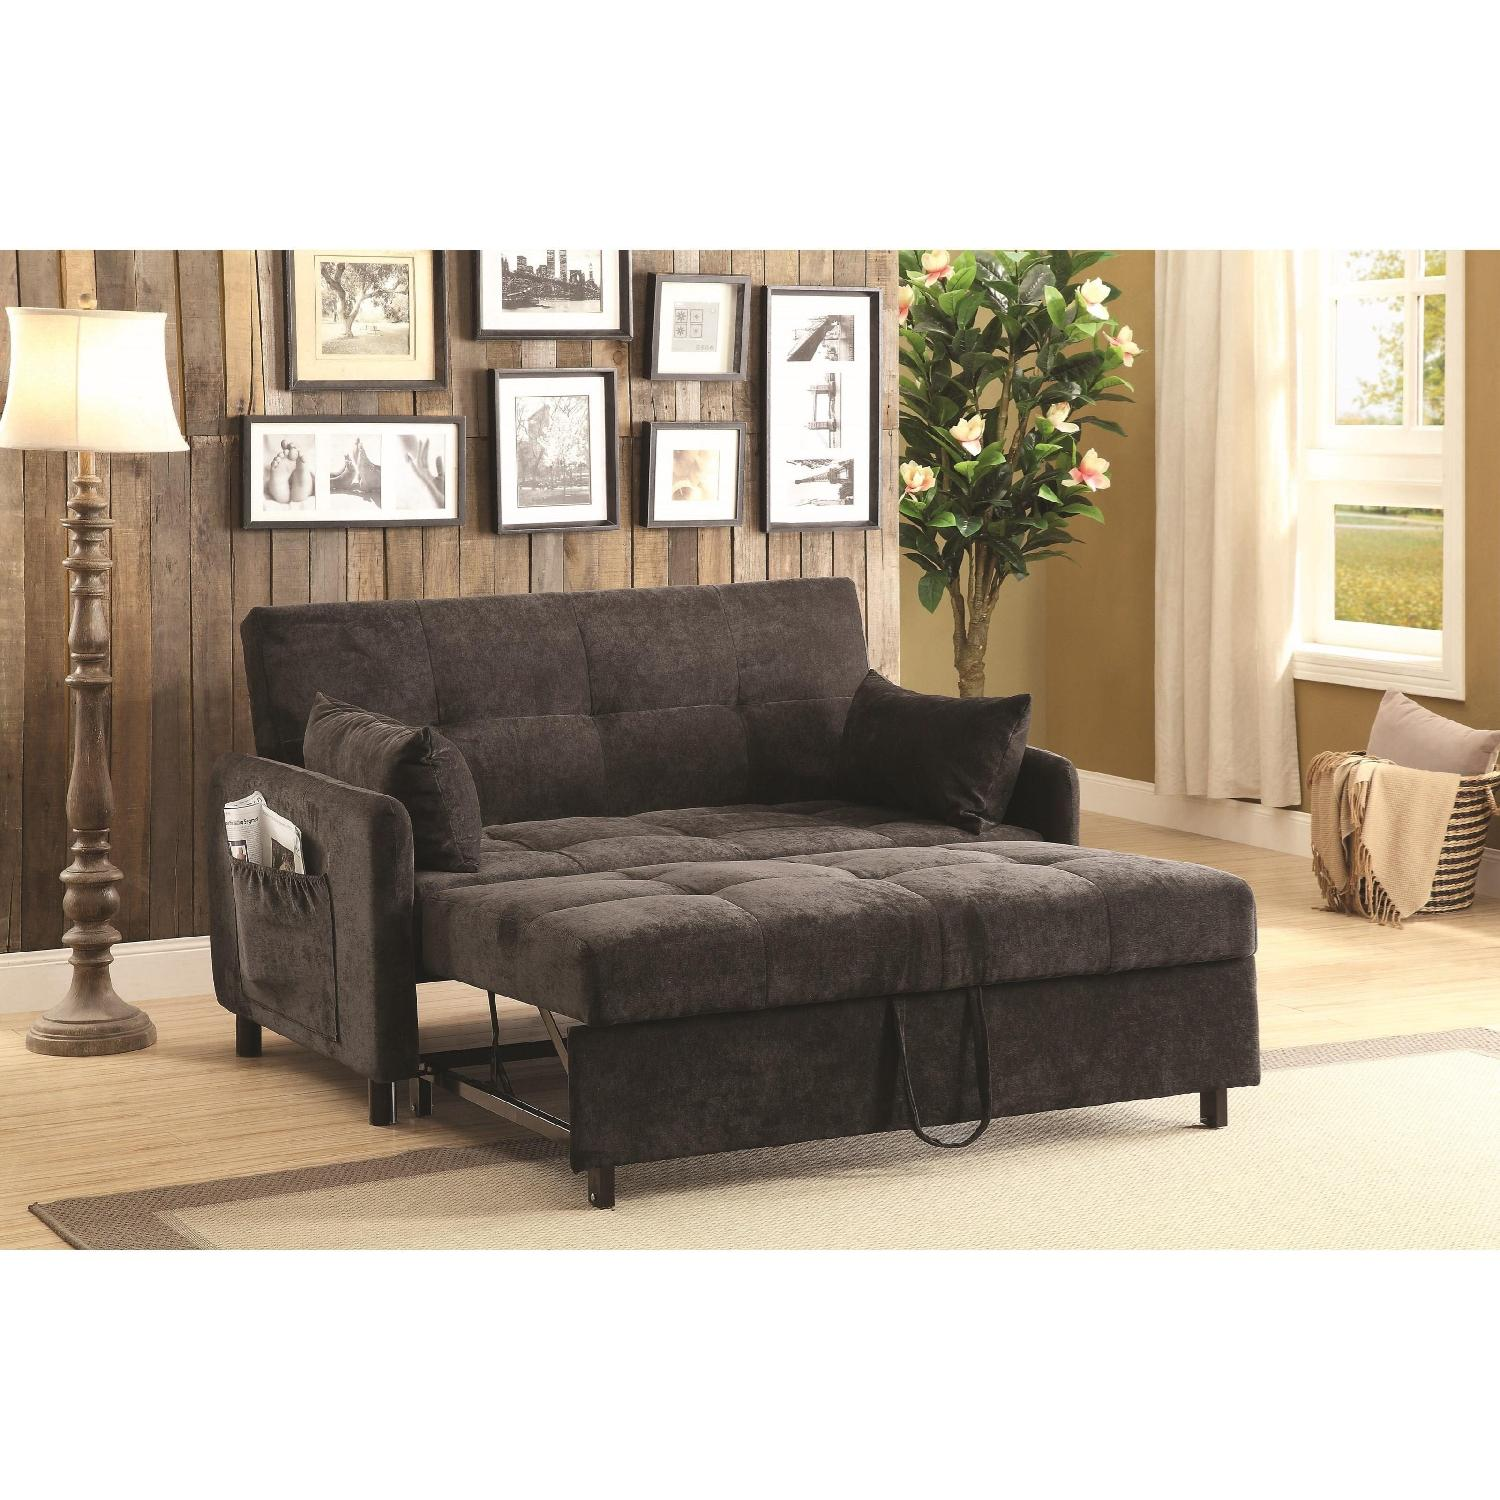 Excellent Sofabed Upholstered In Dark Brown Fabric Pull Out Sleeper Unemploymentrelief Wooden Chair Designs For Living Room Unemploymentrelieforg